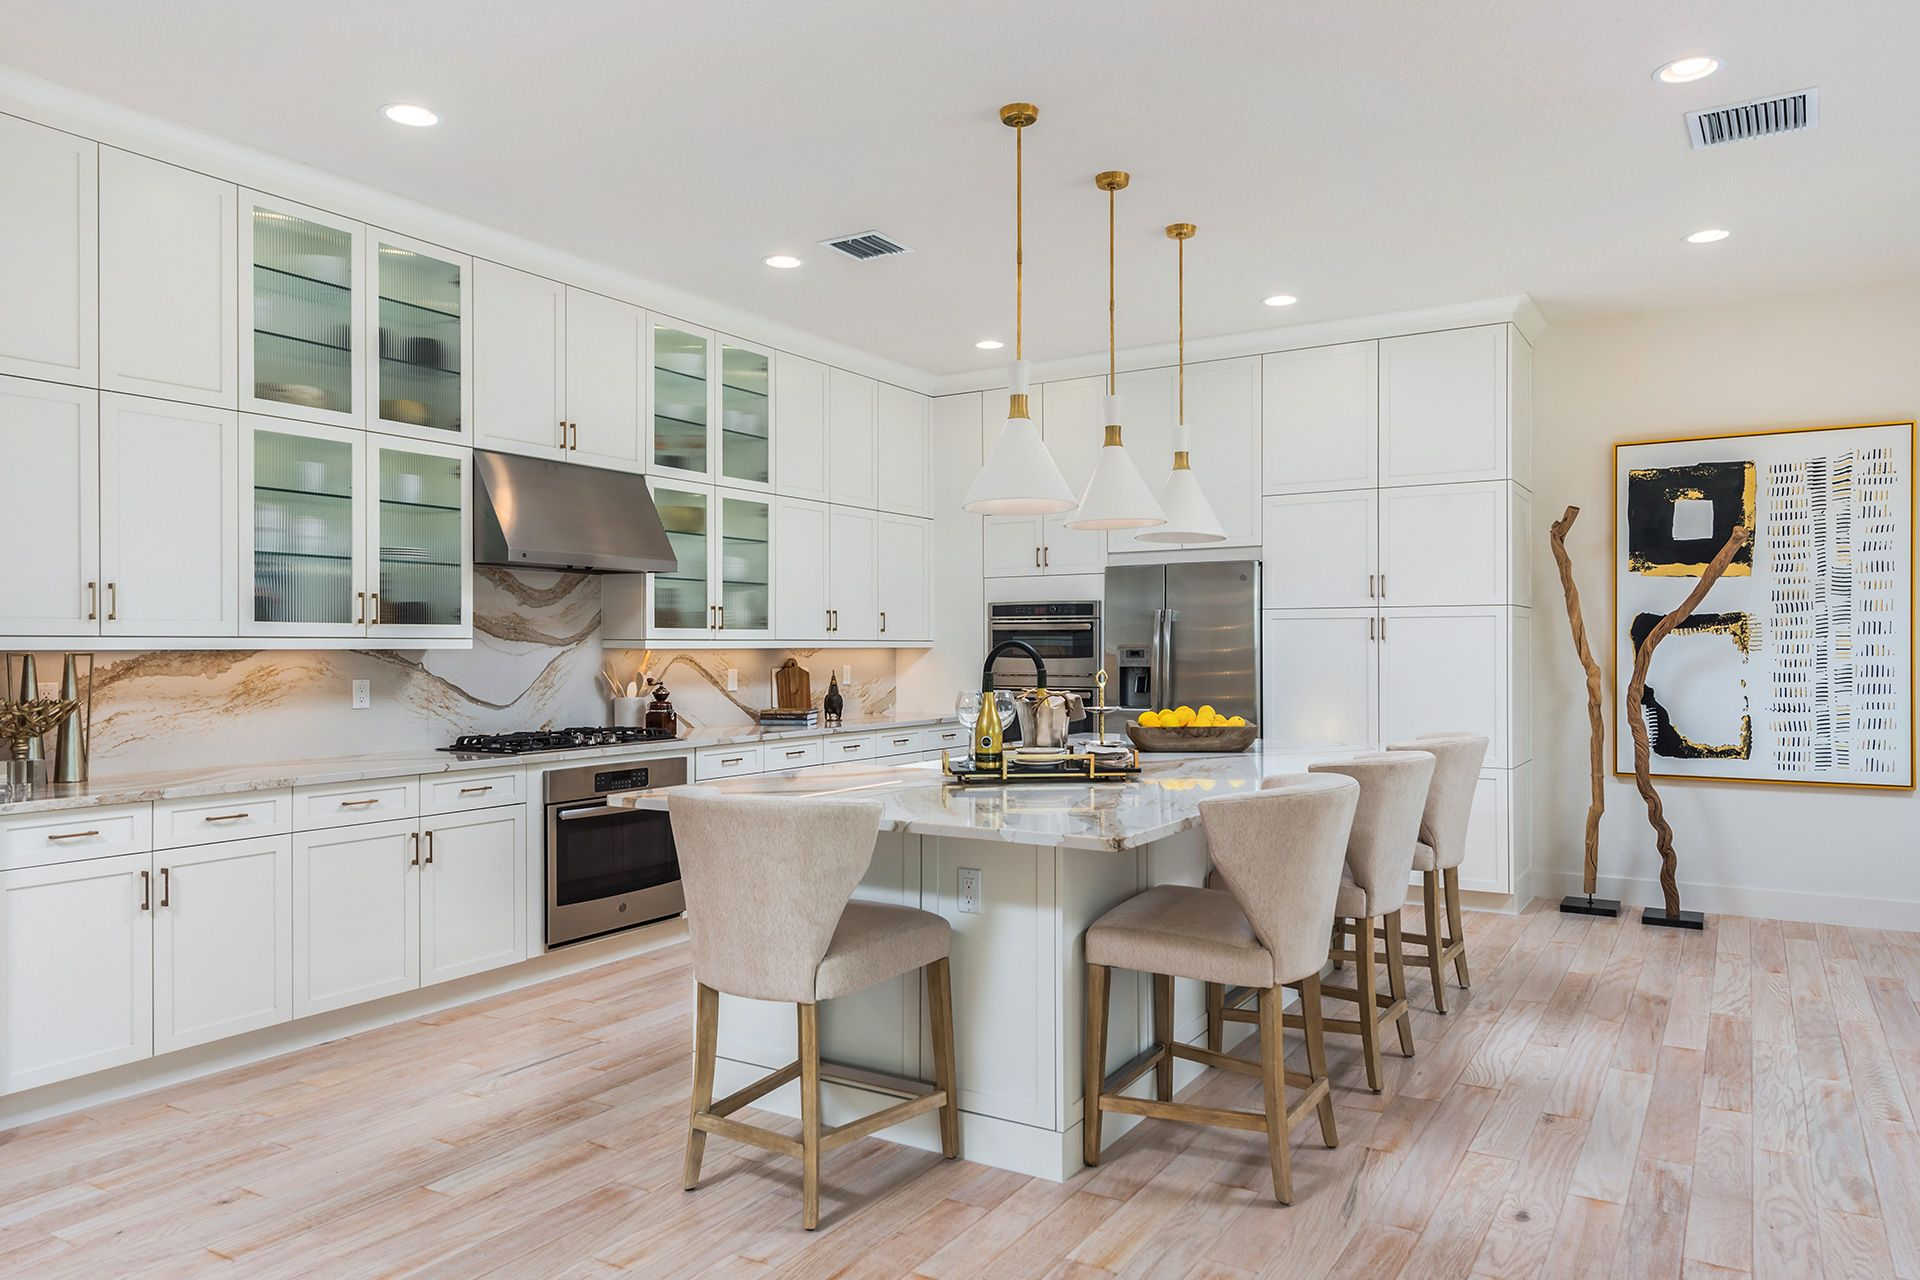 Kitchen featured in the Mariana By GL Homes in Palm Beach County, FL